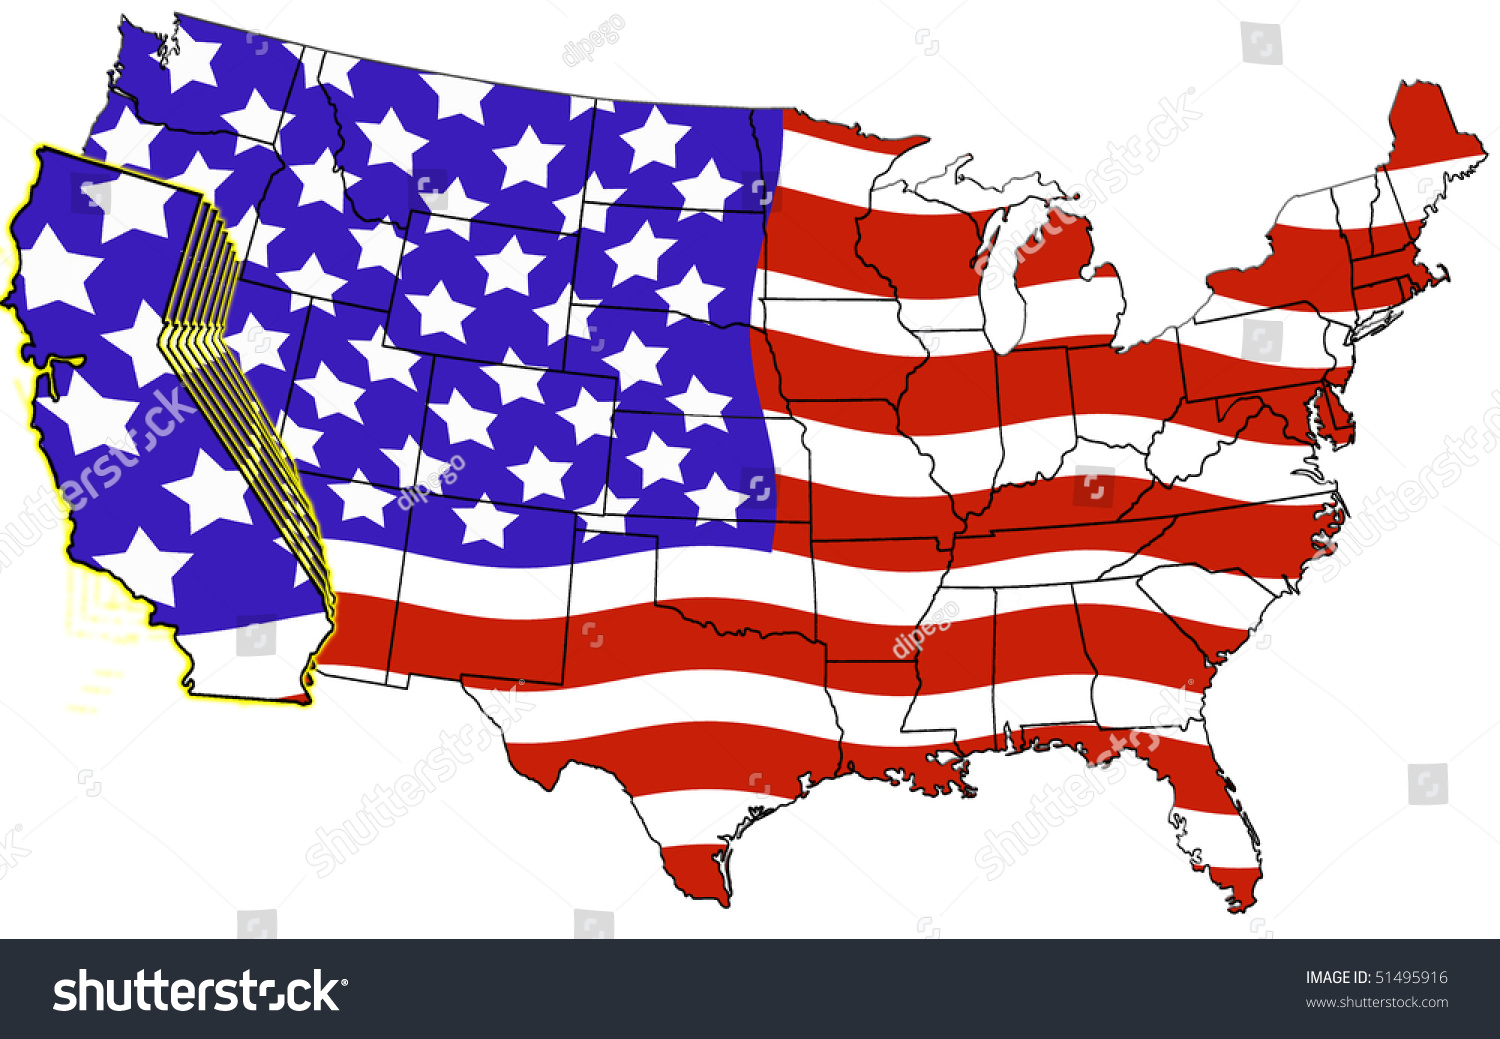 Usa Map California Highlighted Flag Color Stock Illustration - Usa road map california